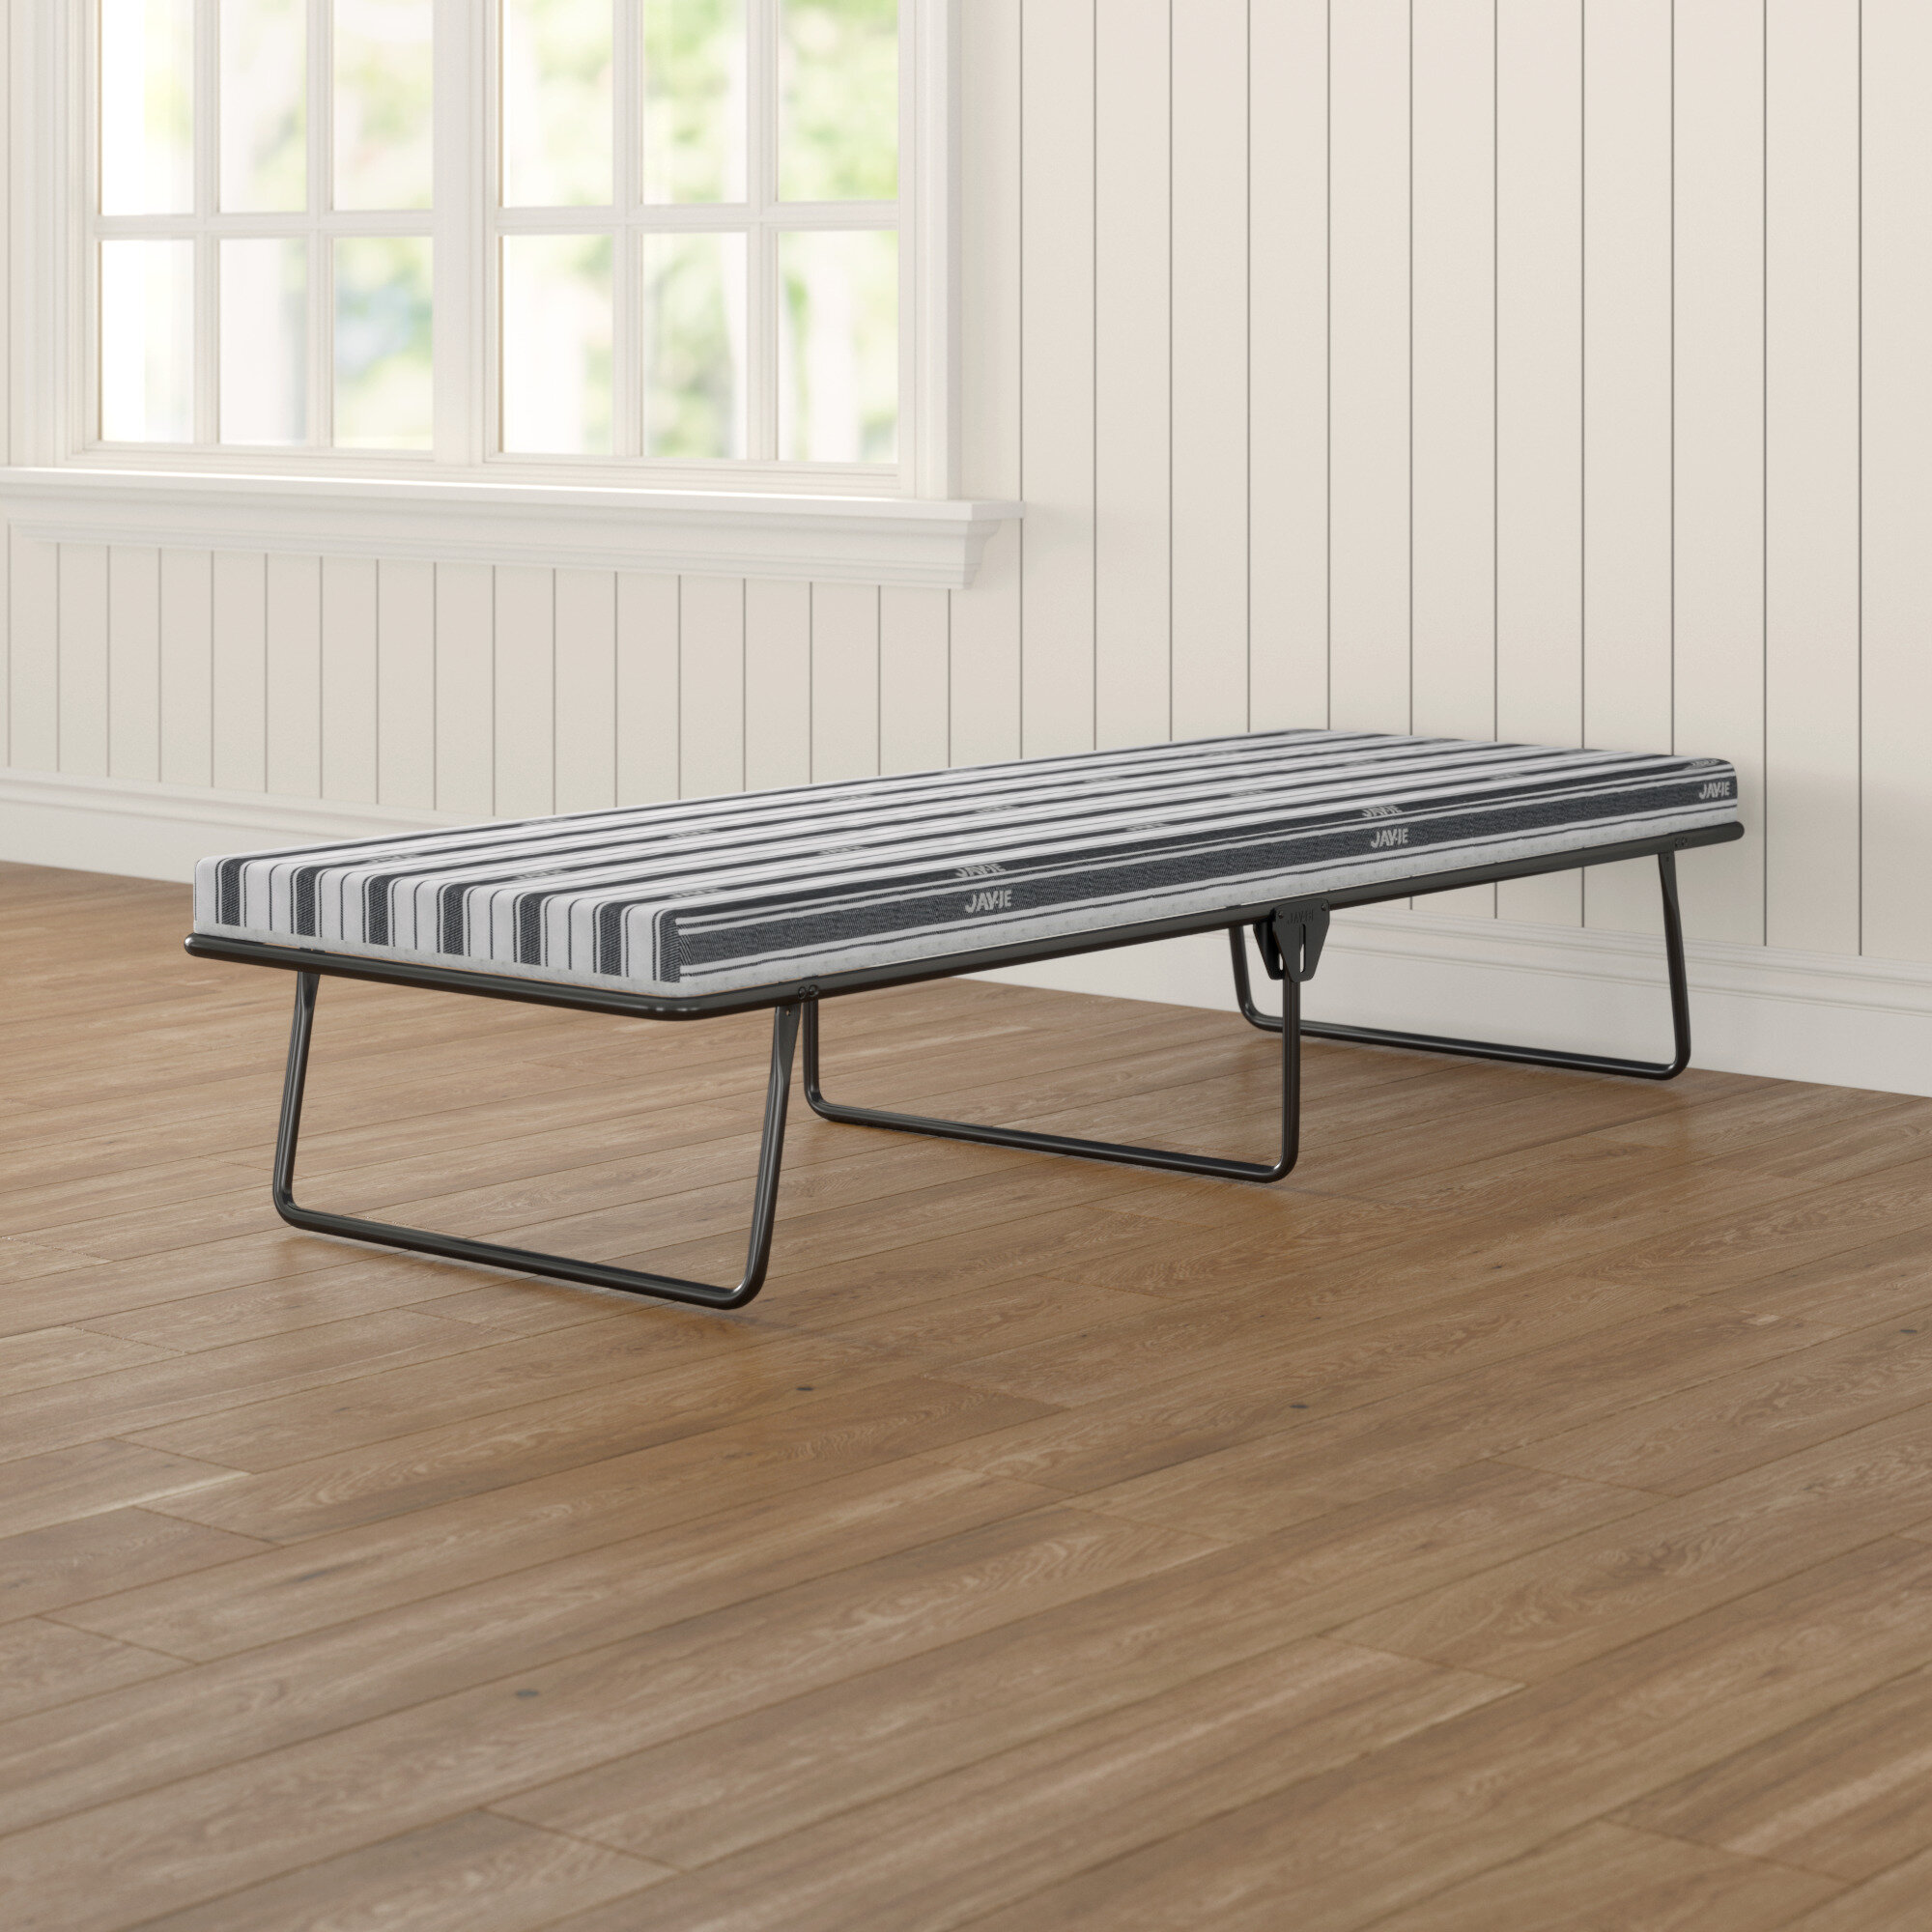 - Jay-Be Daybed With Mattress & Reviews Wayfair.co.uk